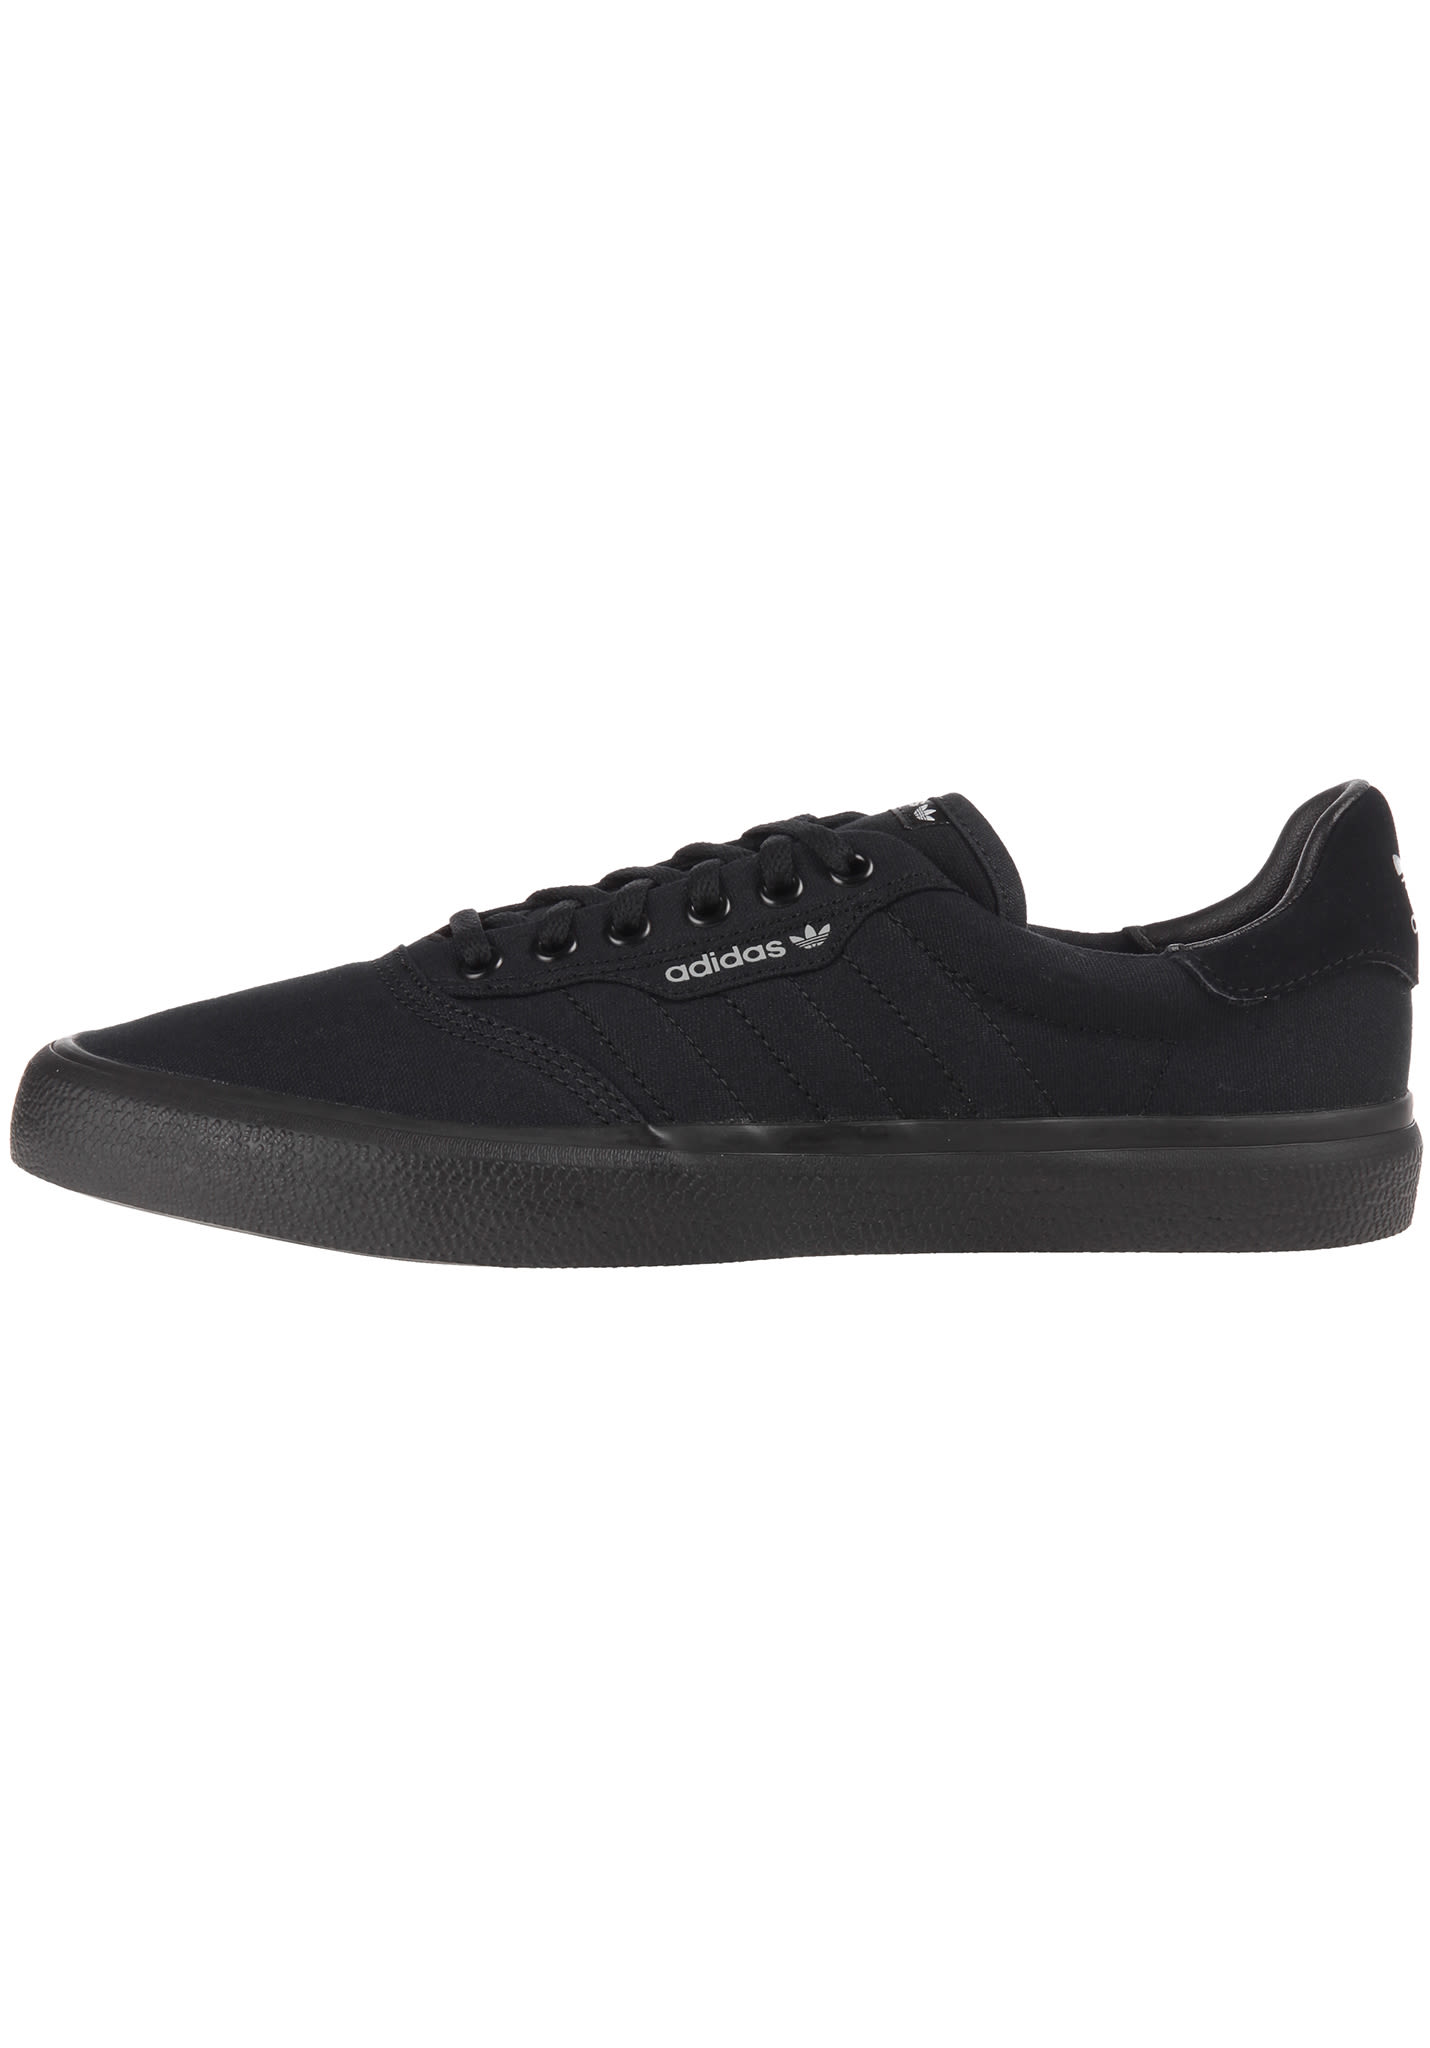 Adidas Skateboarding 3Mc - Sneakers for Men - Black - Planet Sports 24339453d